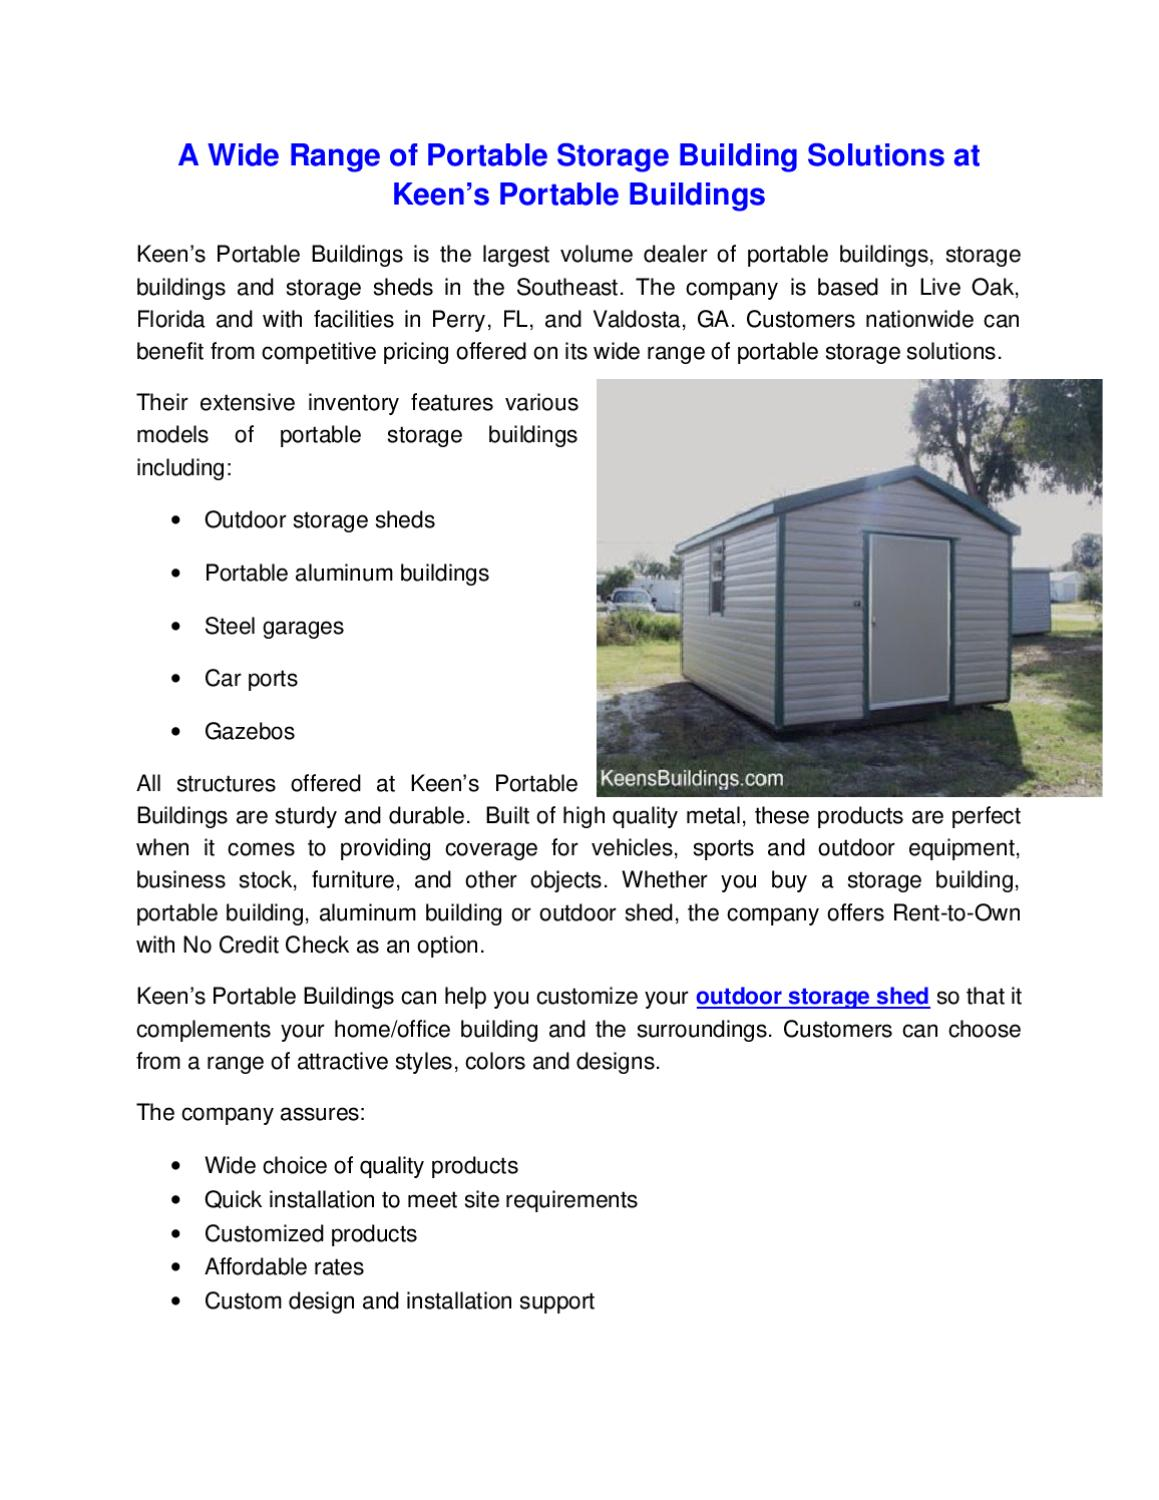 A Wide Range Of Portable Storage Building Solutions At